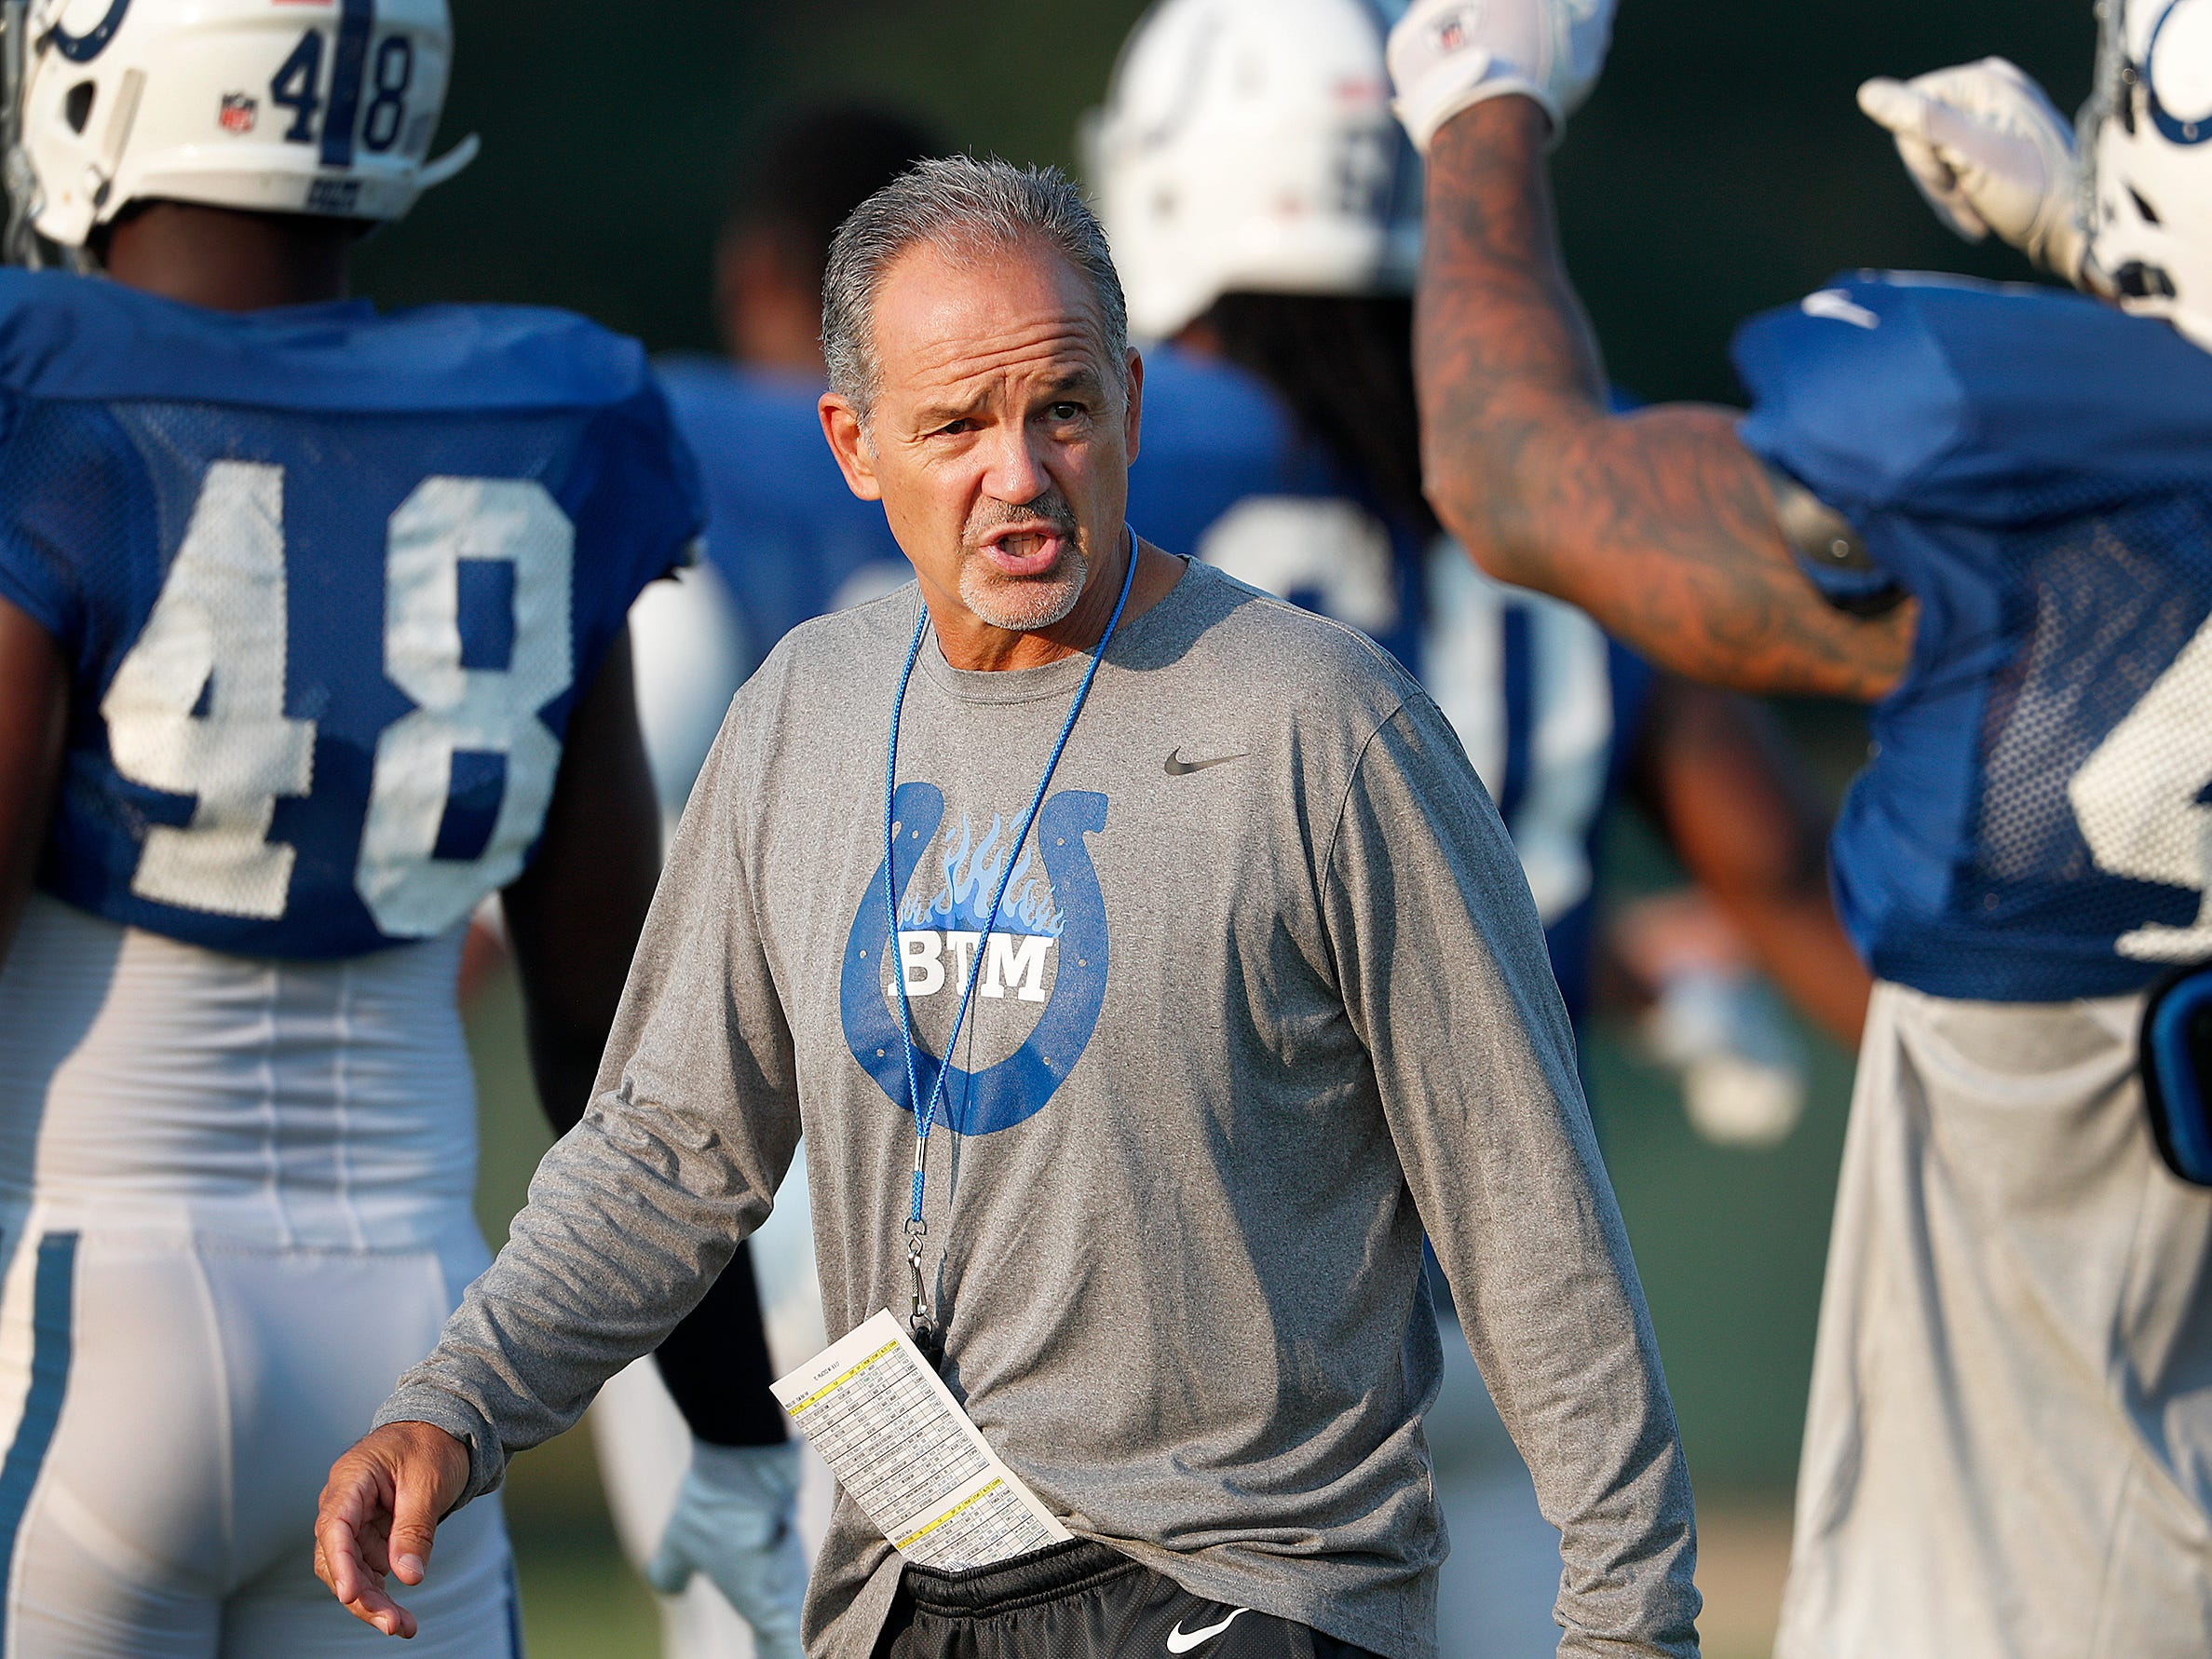 Indianapolis Colts head coach Chuck Pagano at their practice during preseason training camp Thursday, August 3, 2017, morning at the Colts complex on West 56th Street.